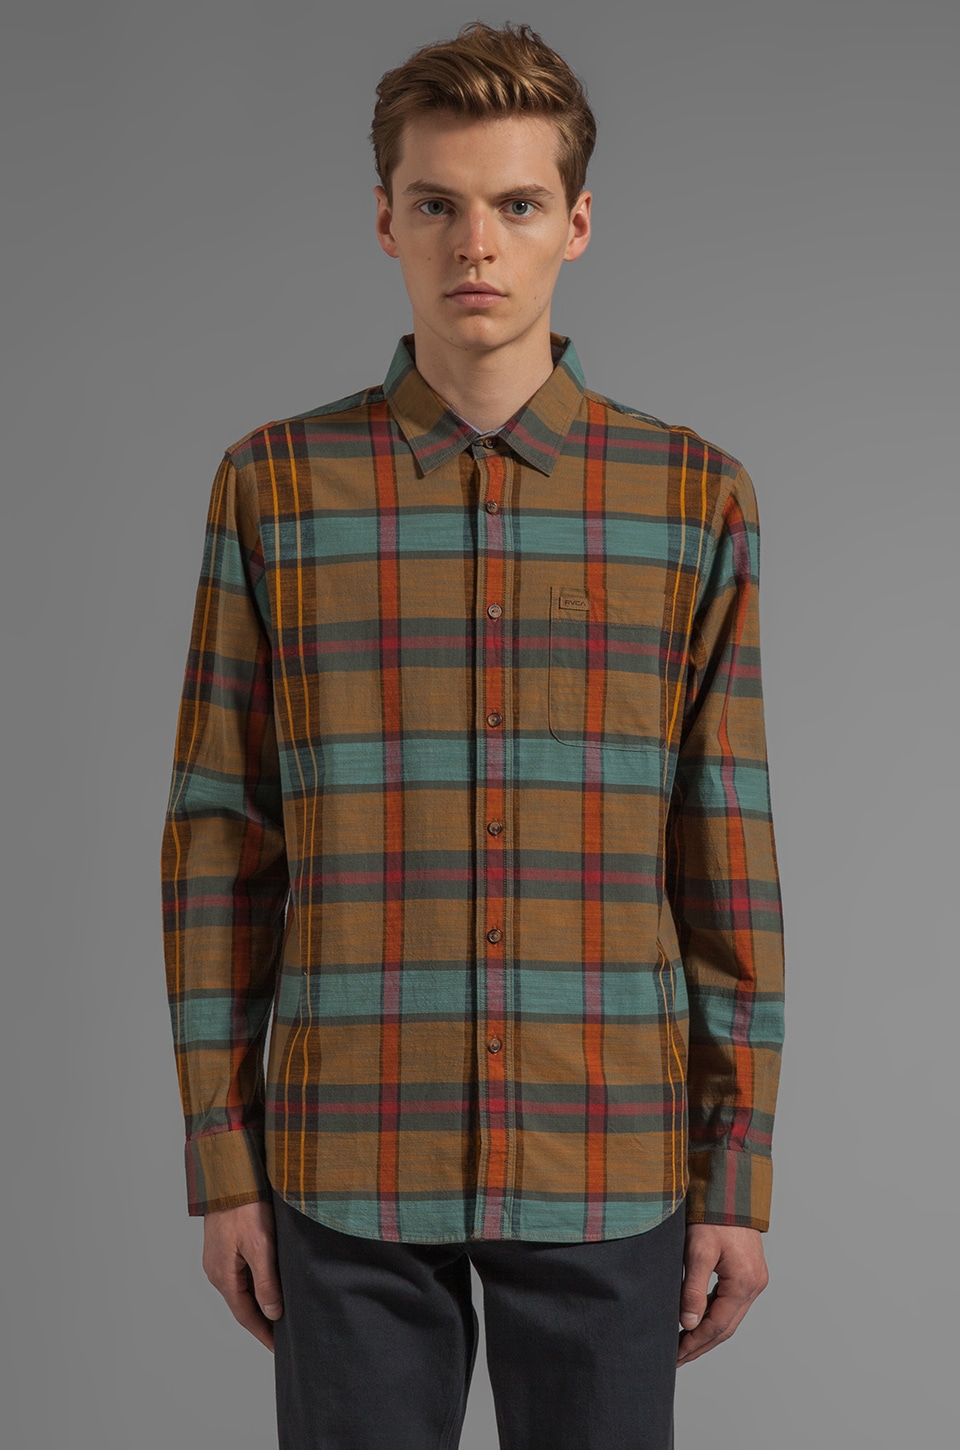 RVCA Hot Shaka Laka L/S Button Down in Cathay Spice